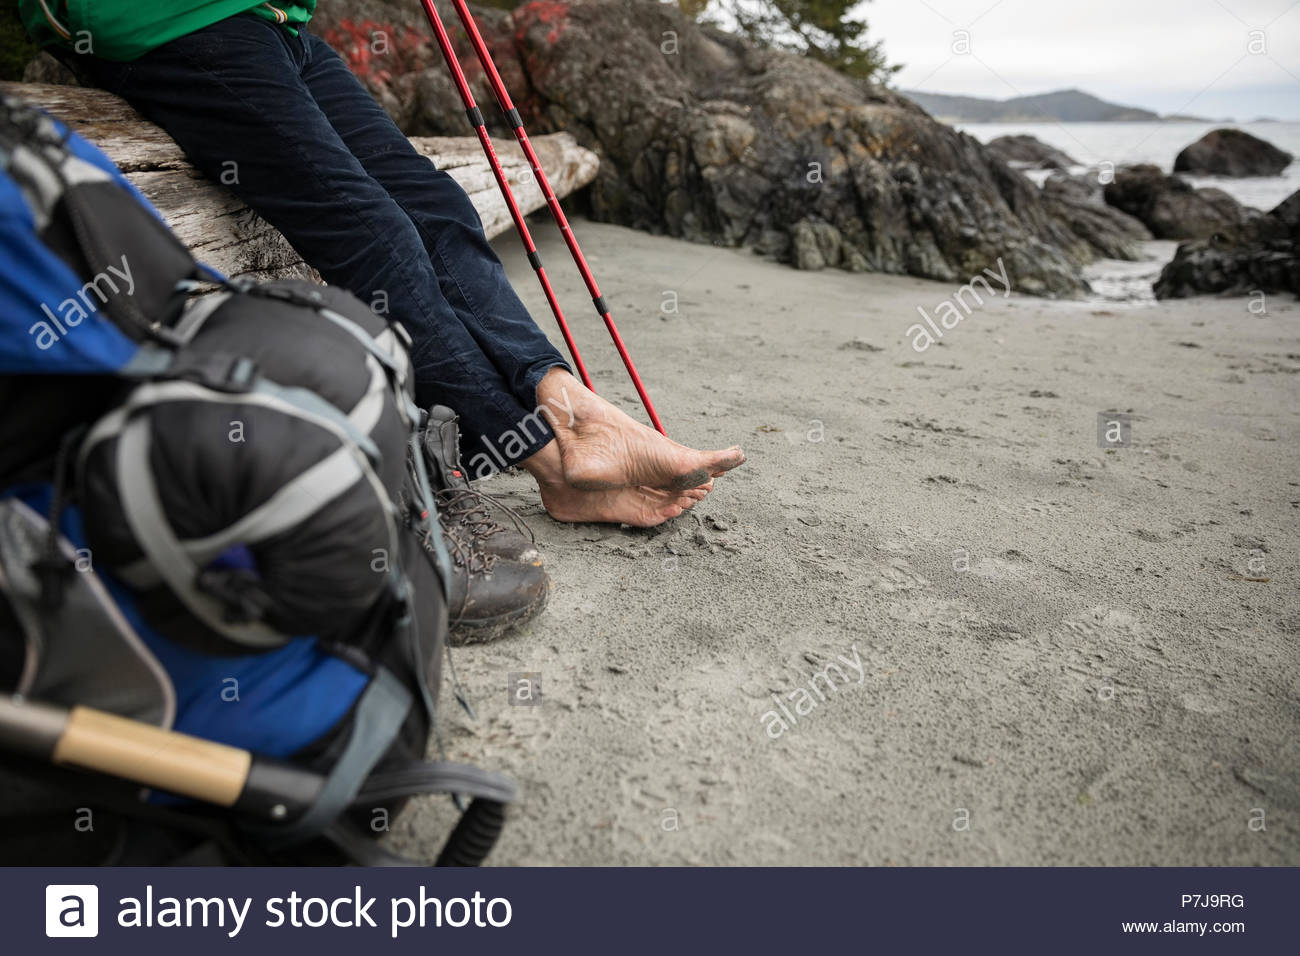 Barefoot man backpacking, resting on rugged beach Stock Photo